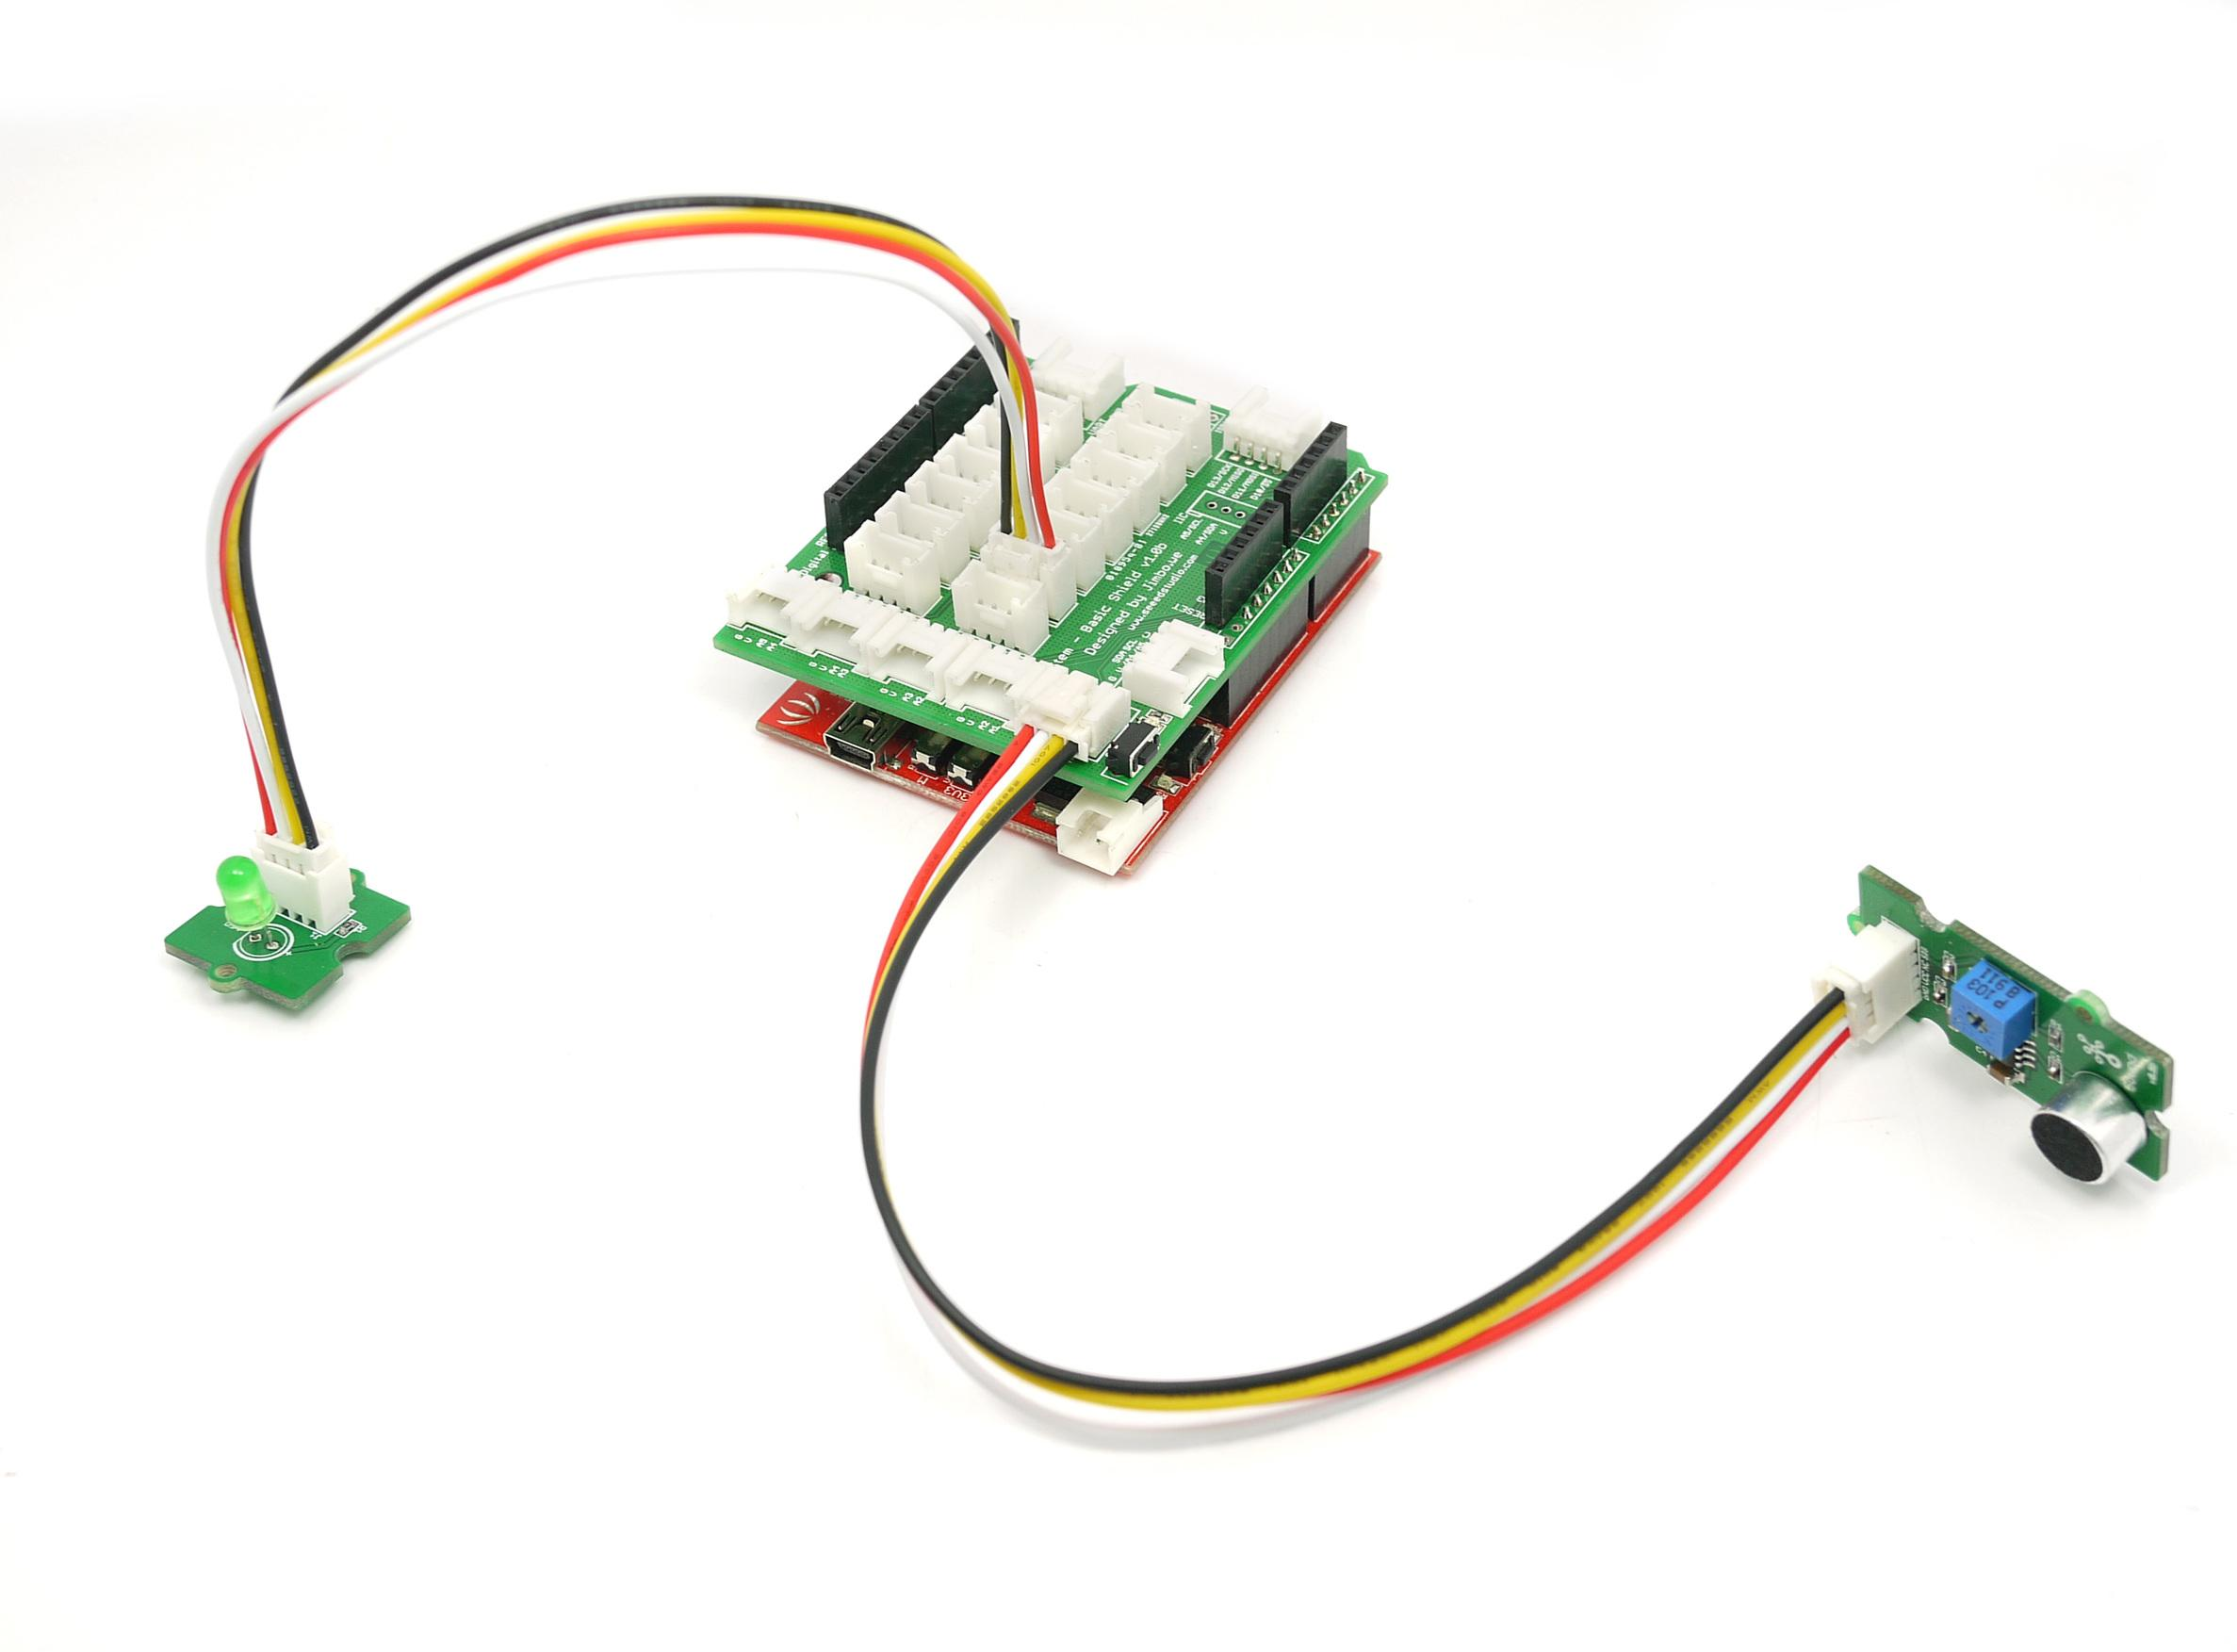 Grove Sound Sensor Electret Microphone Circuit As Well Arduino With